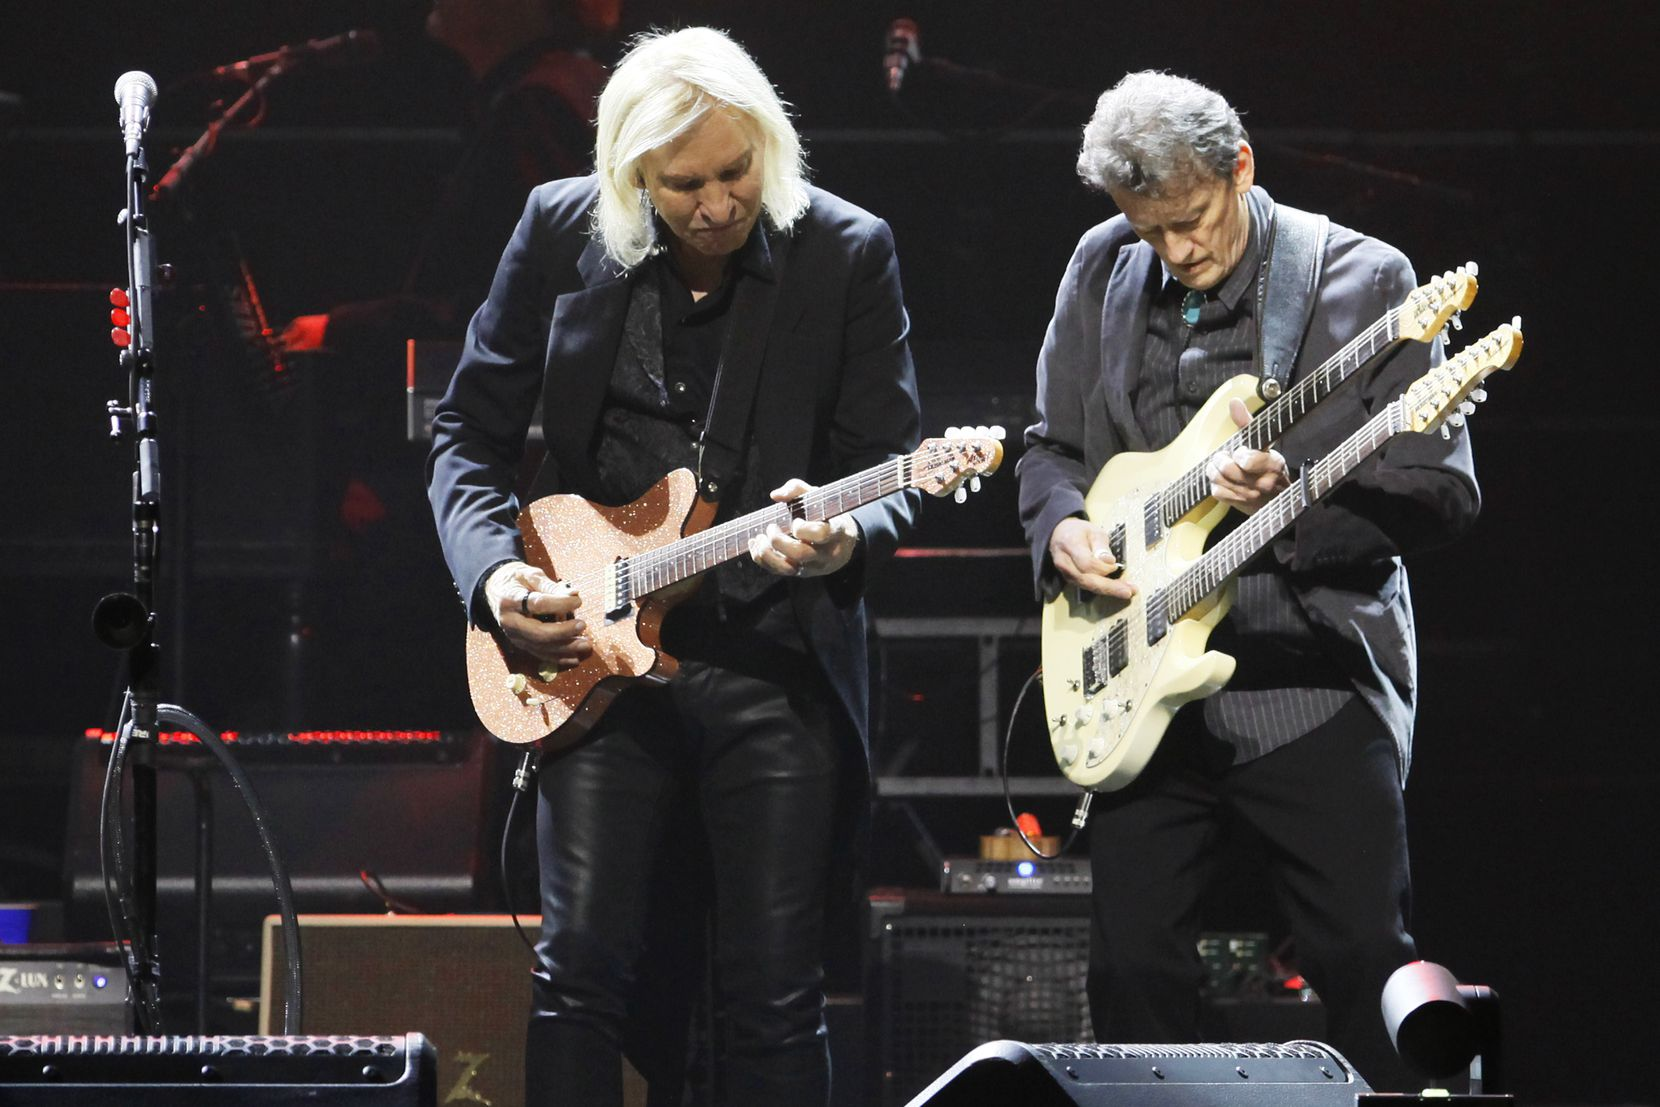 Members of the American rock band the Eagles performs at the American Airlines Center in Dallas, Saturday night Feb. 29, 2020.